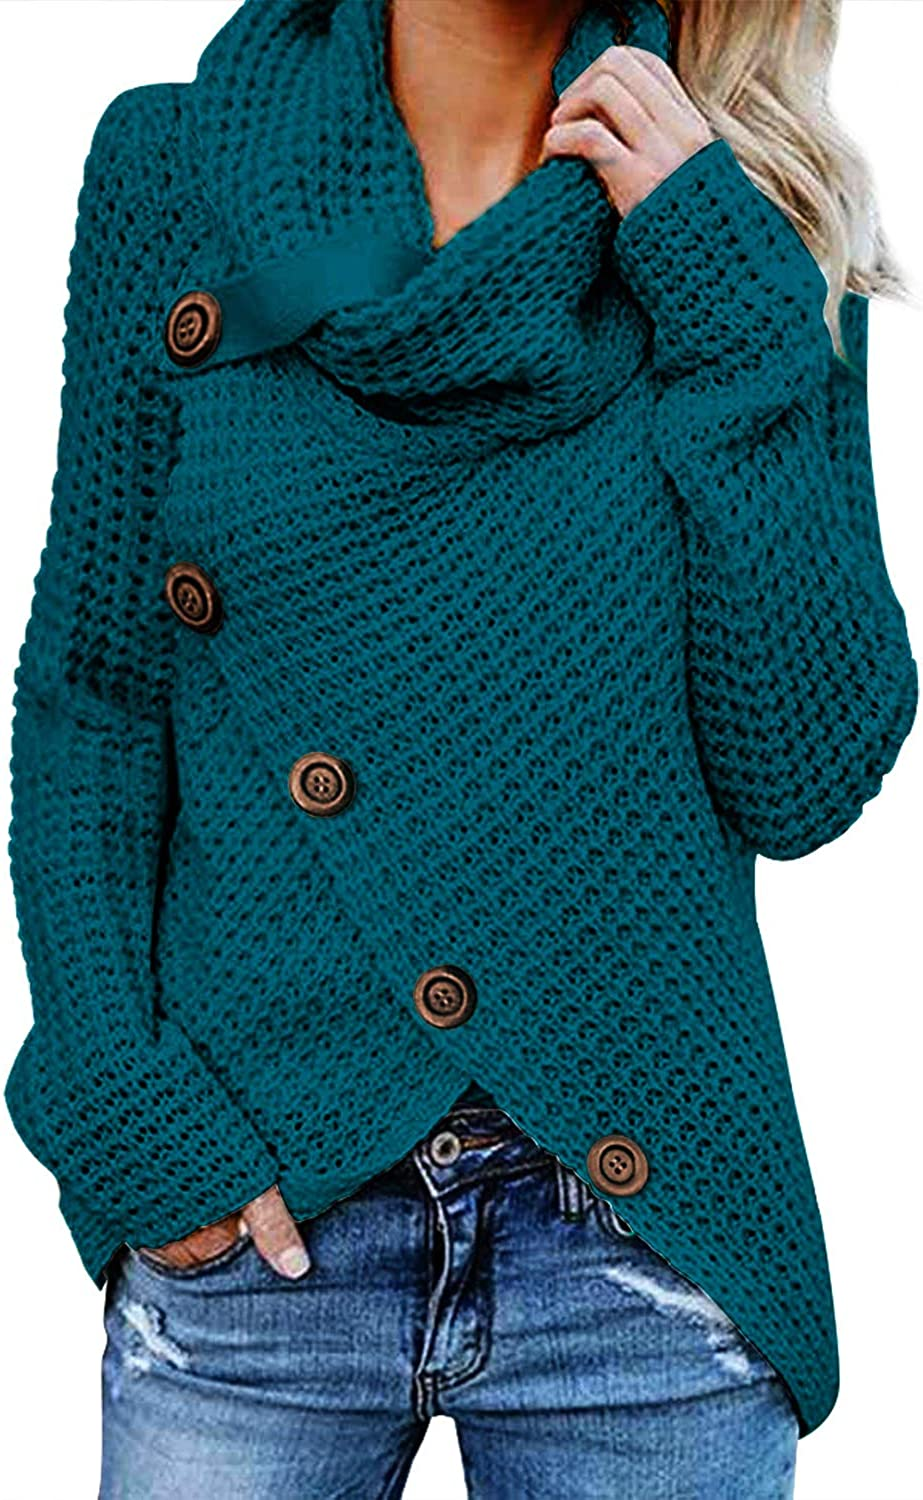 Dokotoo Women's Button Chunky Sweaters Turtle Cowl Neck Asymmetric Wrap Warm Winter Oversized Pullover Sweater